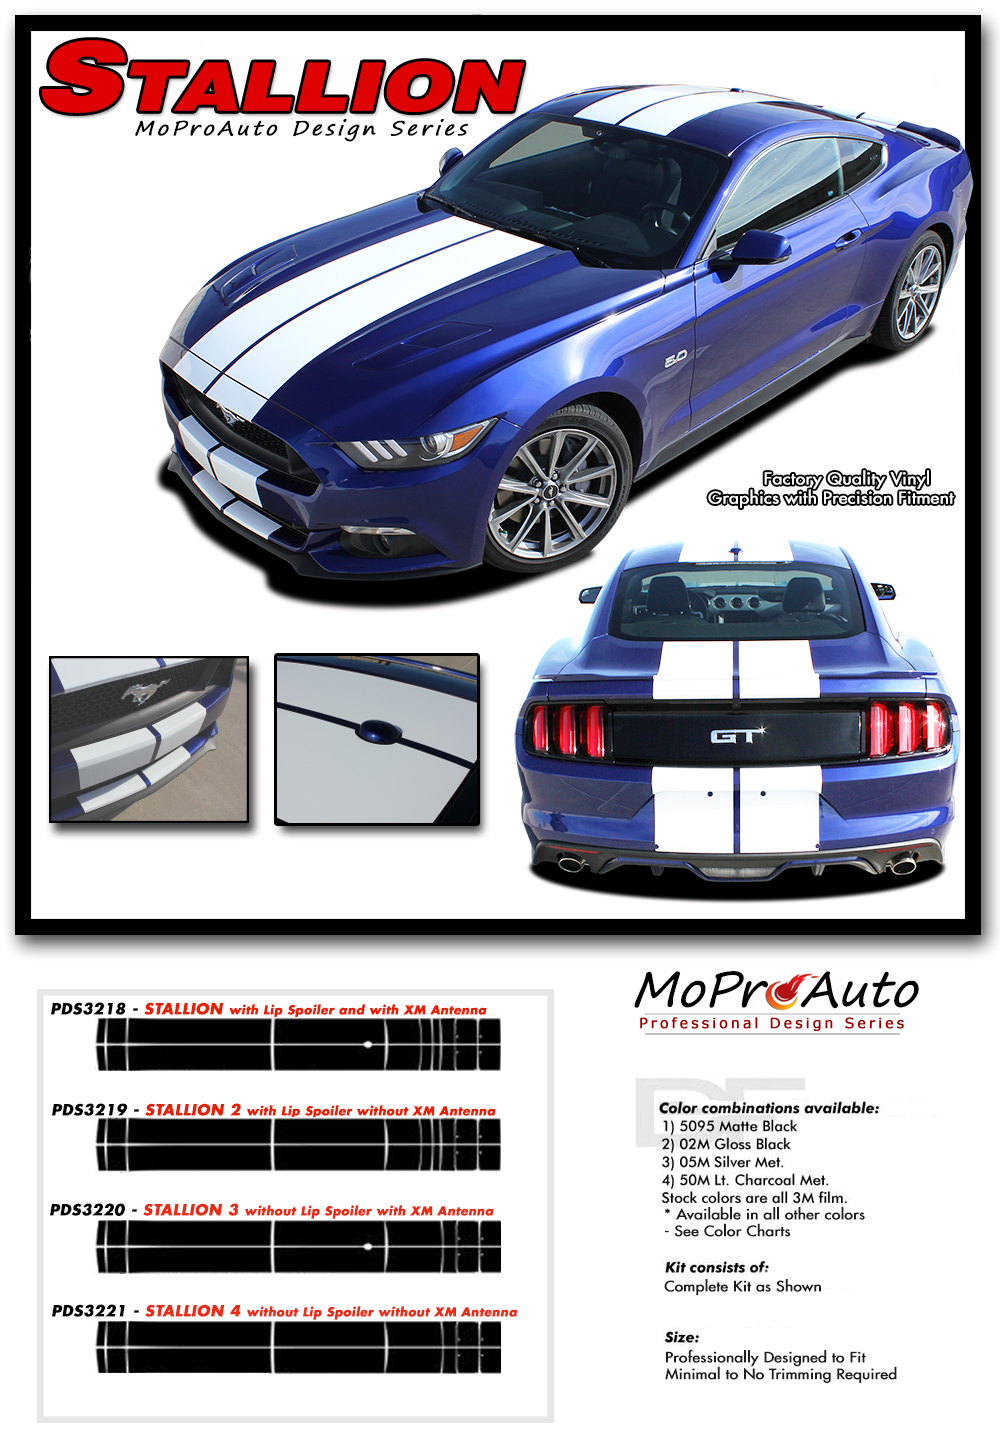 2015 2016 2017 STALLION OEM Style Racing Stripes for Ford Mustang - MoProAuto Pro Design Series Vinyl Graphics, Stripes and Decals Kit